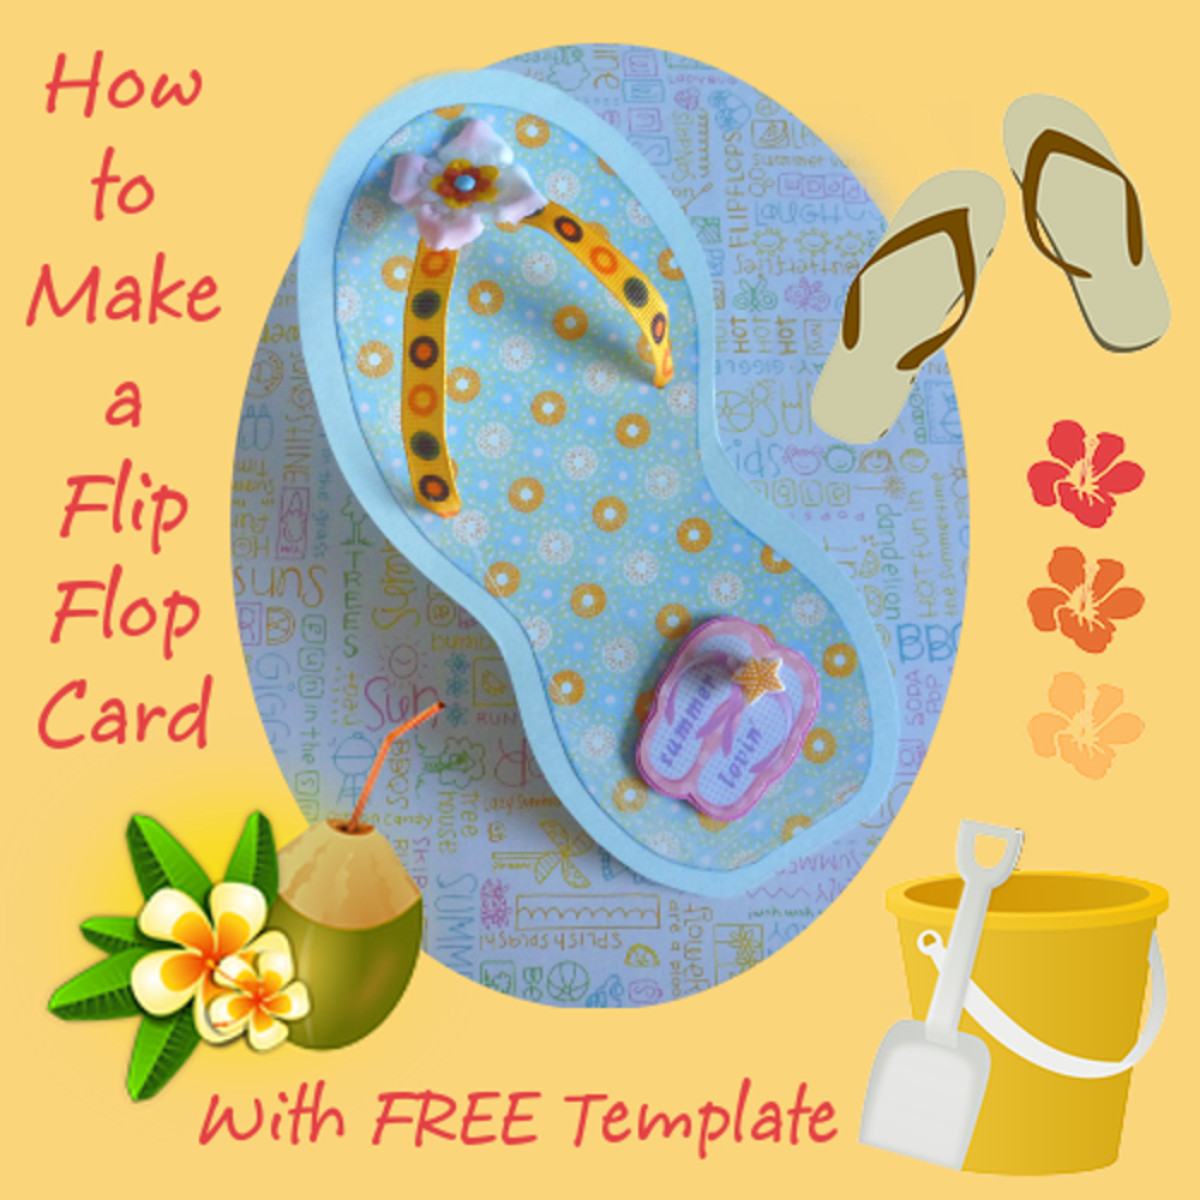 photograph relating to Flip Flop Template Printable known as How towards Deliver a Turn Flop Card With Template Holidappy